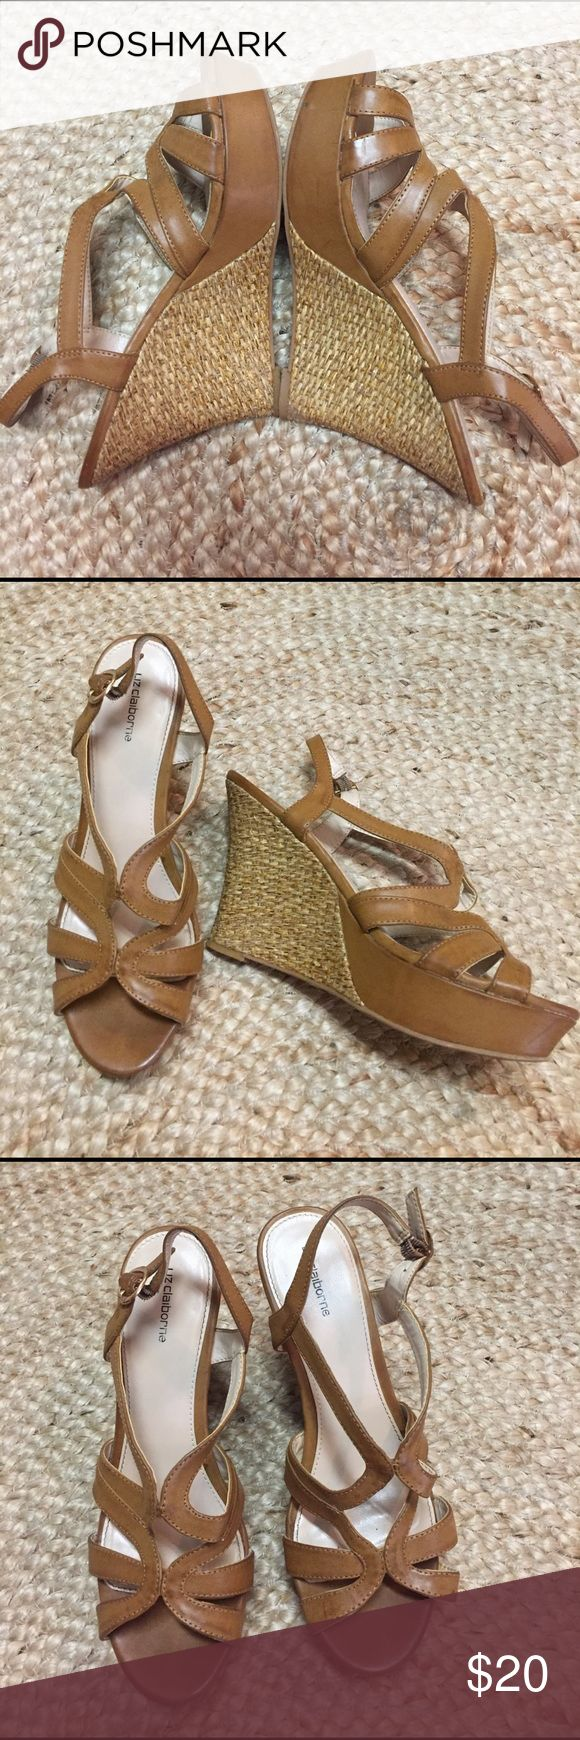 """Liz Claiborne tan strappy wedge sandal 7.5 Beautiful woven heel * approximately 4.5"""" * neutral color * a few flaws in platform (please see last photo) * Thanks for looking! :) Liz Claiborne Shoes Sandals"""